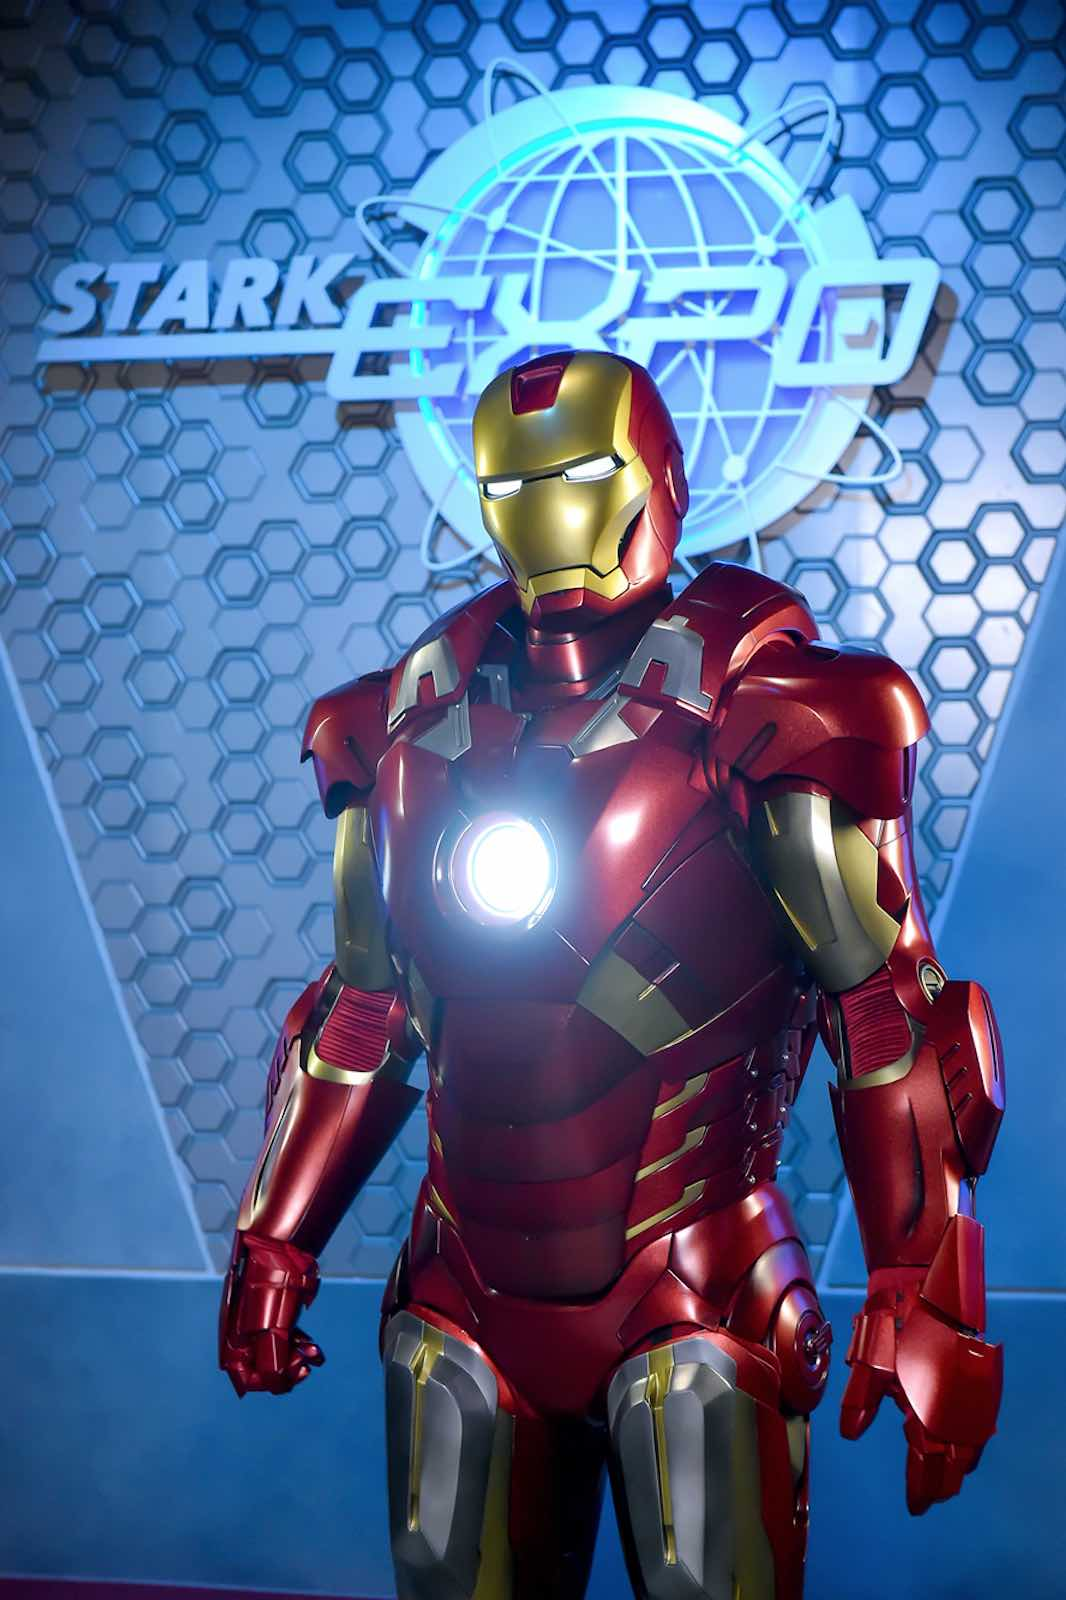 stark-iron-man-heroic-encounter-at-disneyland-hong-kong-aspirantsg